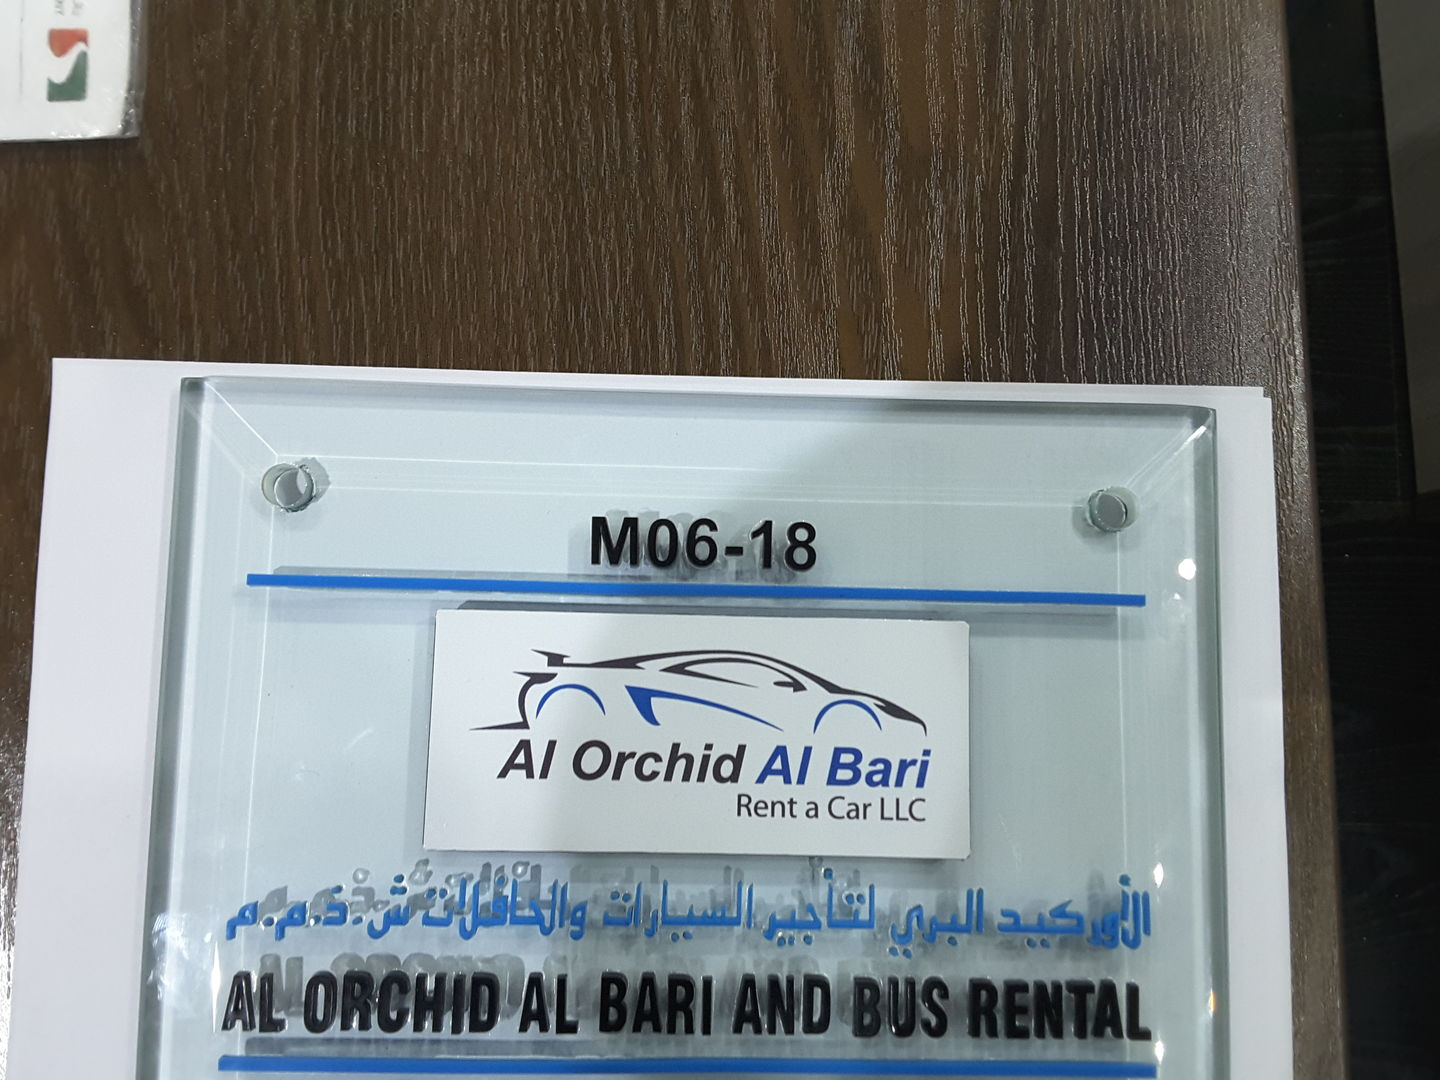 HiDubai-business-al-orchid-albari-car-and-bus-rental-transport-vehicle-services-car-rental-services-port-saeed-dubai-2